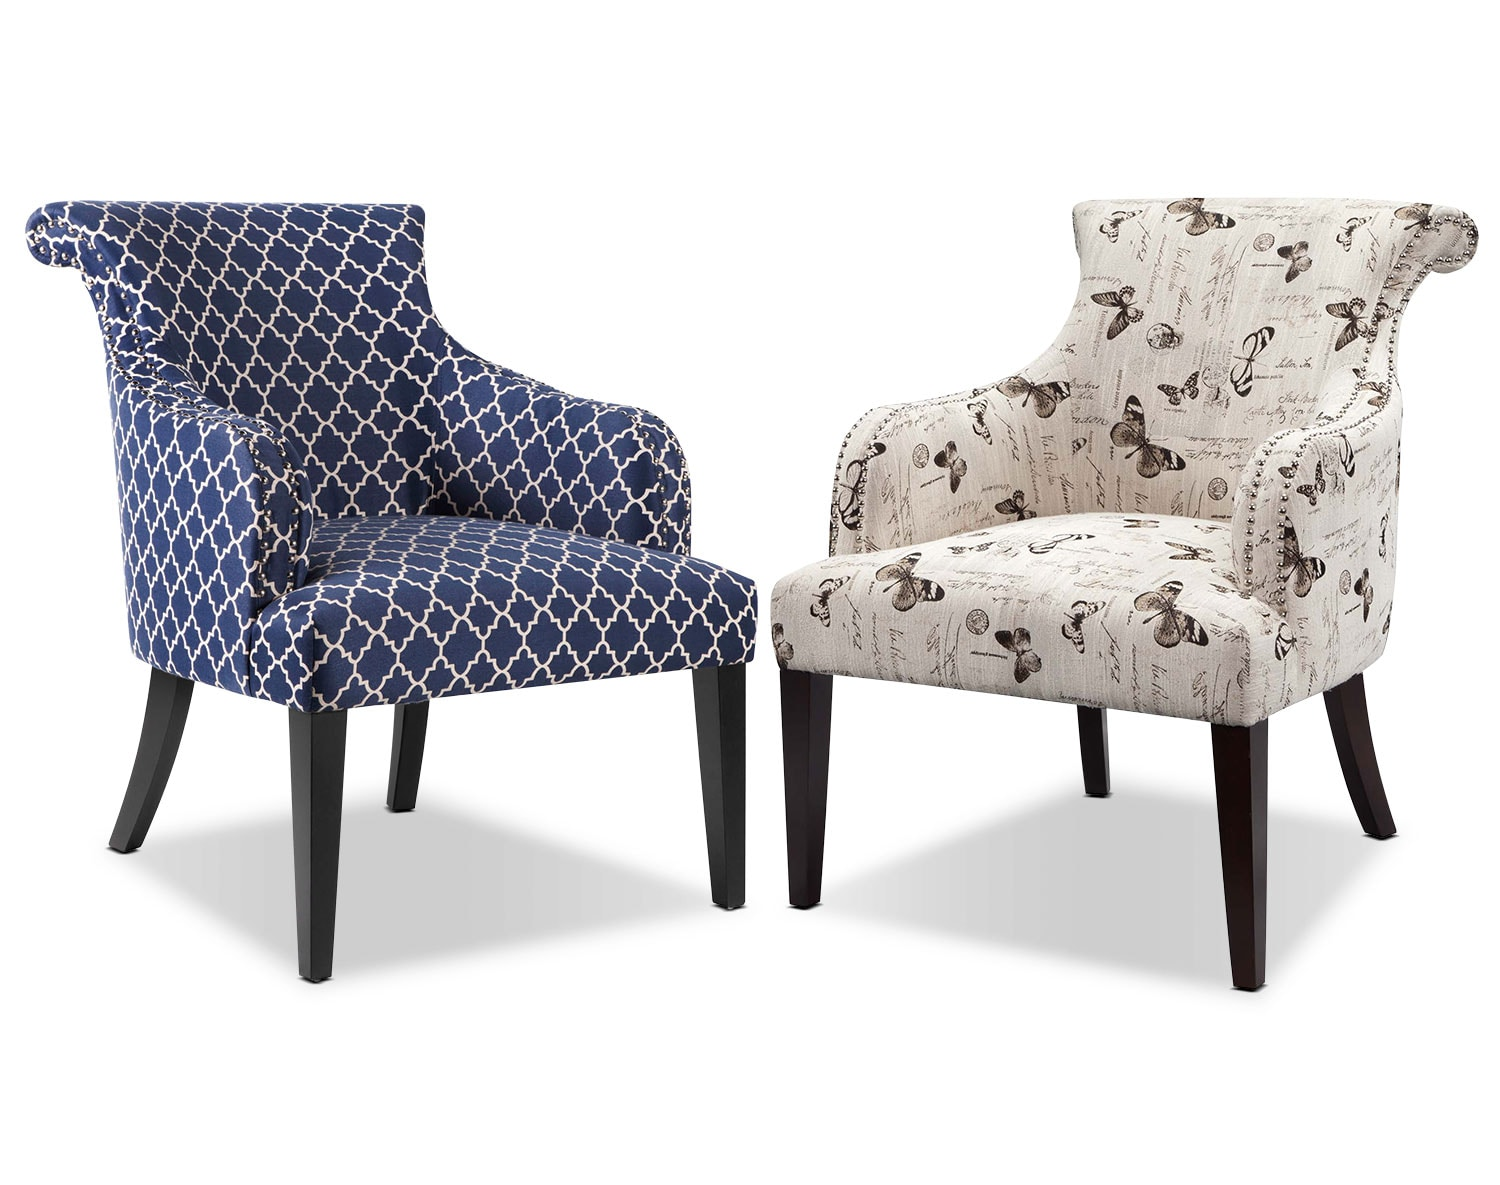 The Hampton Accent Chair Collection